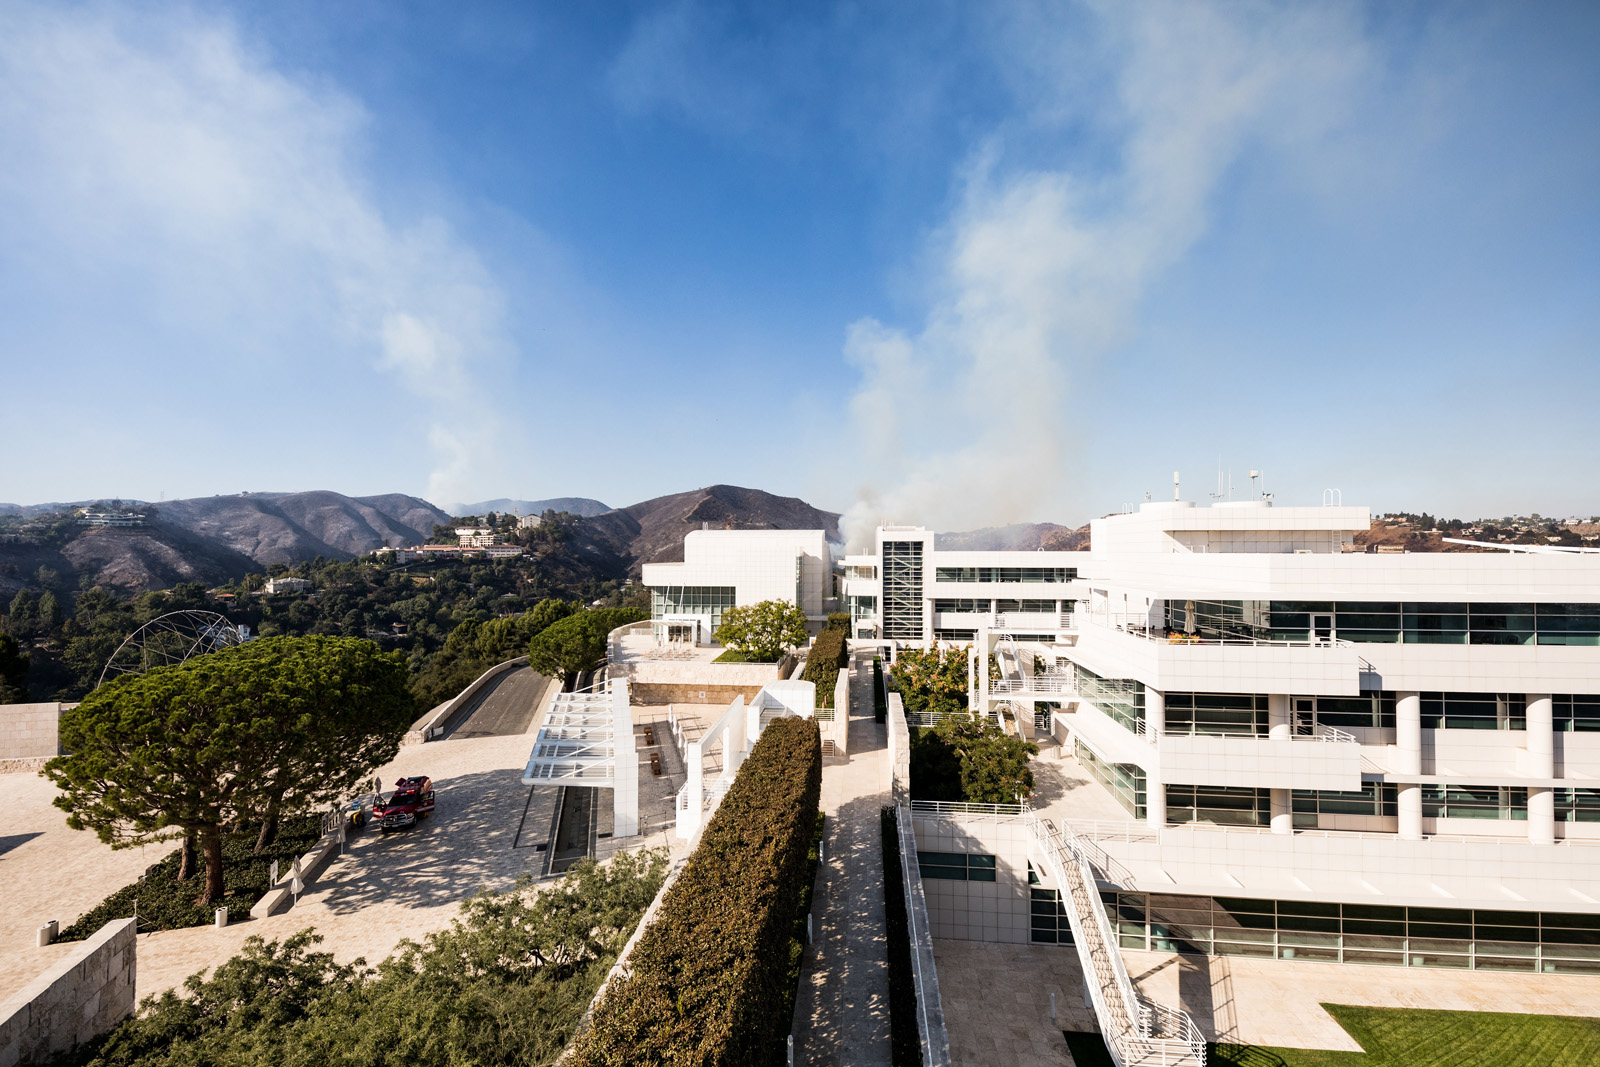 Skies cleared later on Monday afternoon, though some white smoke remained visible north of the Getty Center.